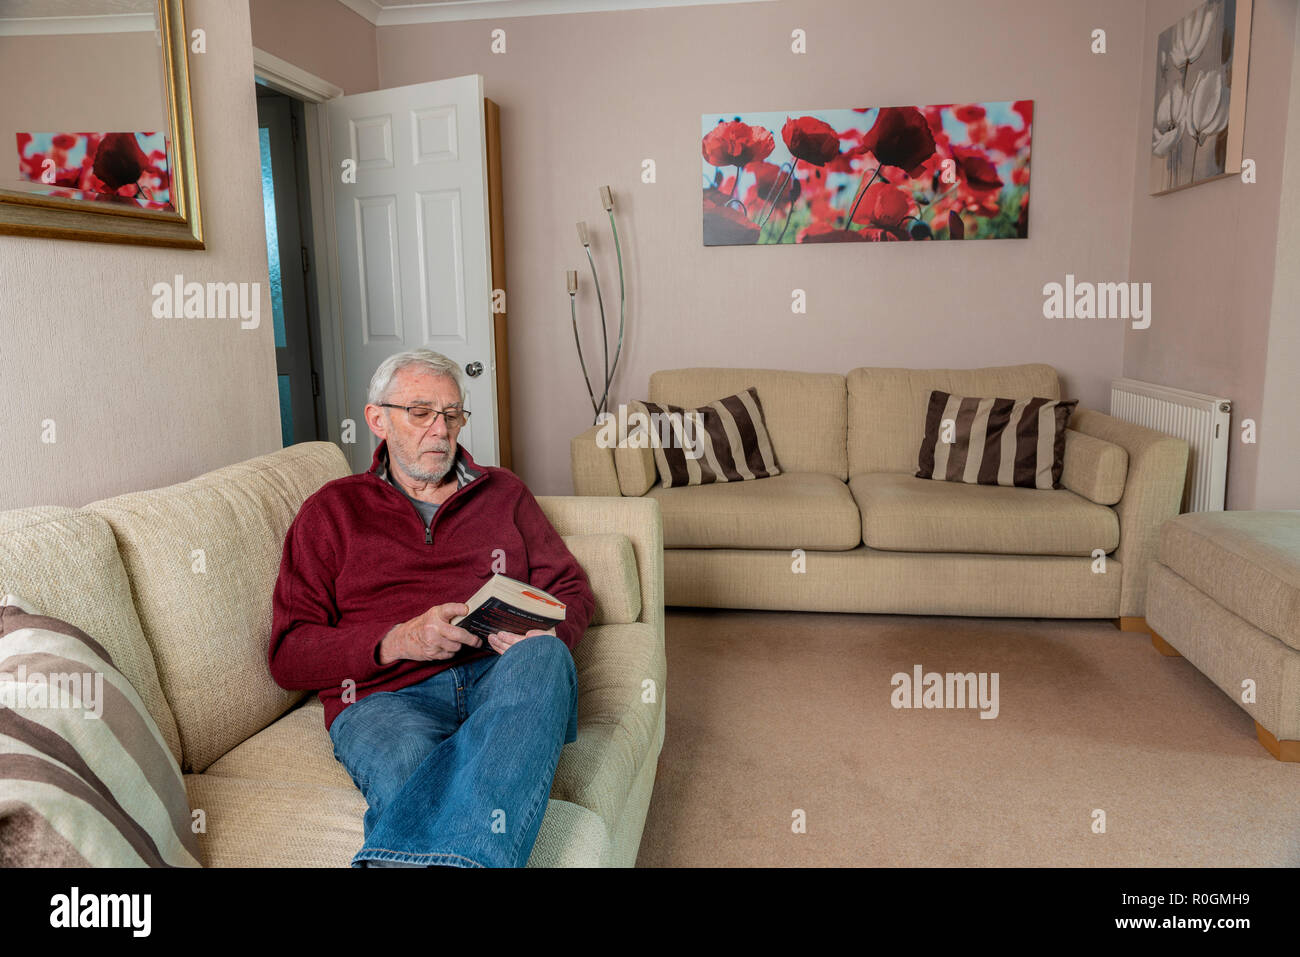 Senior man sitting alone on sofa, grieving after losing a loved one. Loneliness sad and sadness. - Stock Image